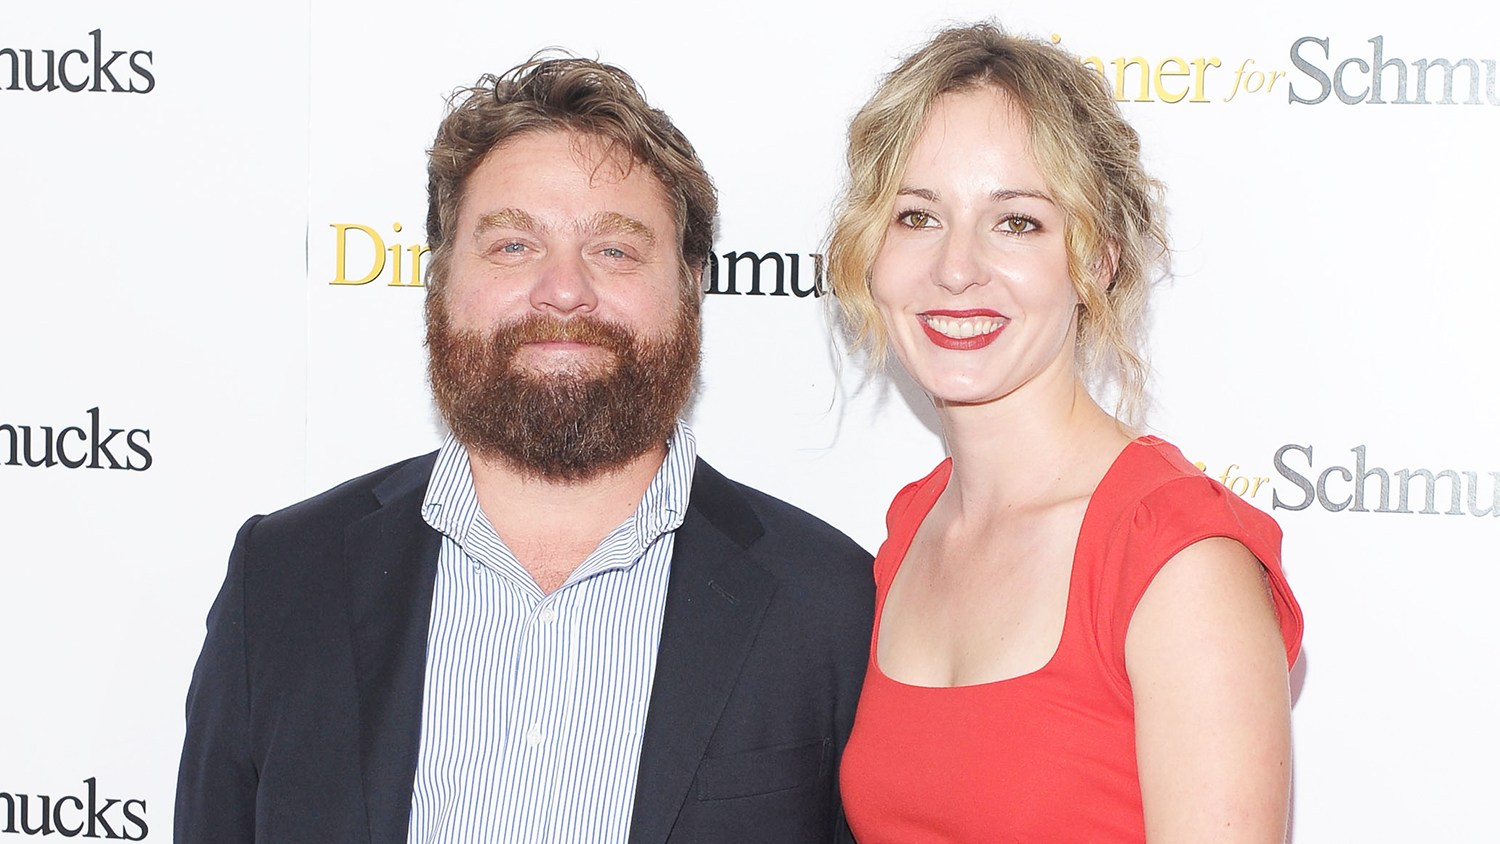 """Actor Zach Galifianakis and Quinn Lundberg attend the """"Dinner For Schmucks"""" premiere at the Ziegfeld Theatre on July 19, 2010 in New York City."""